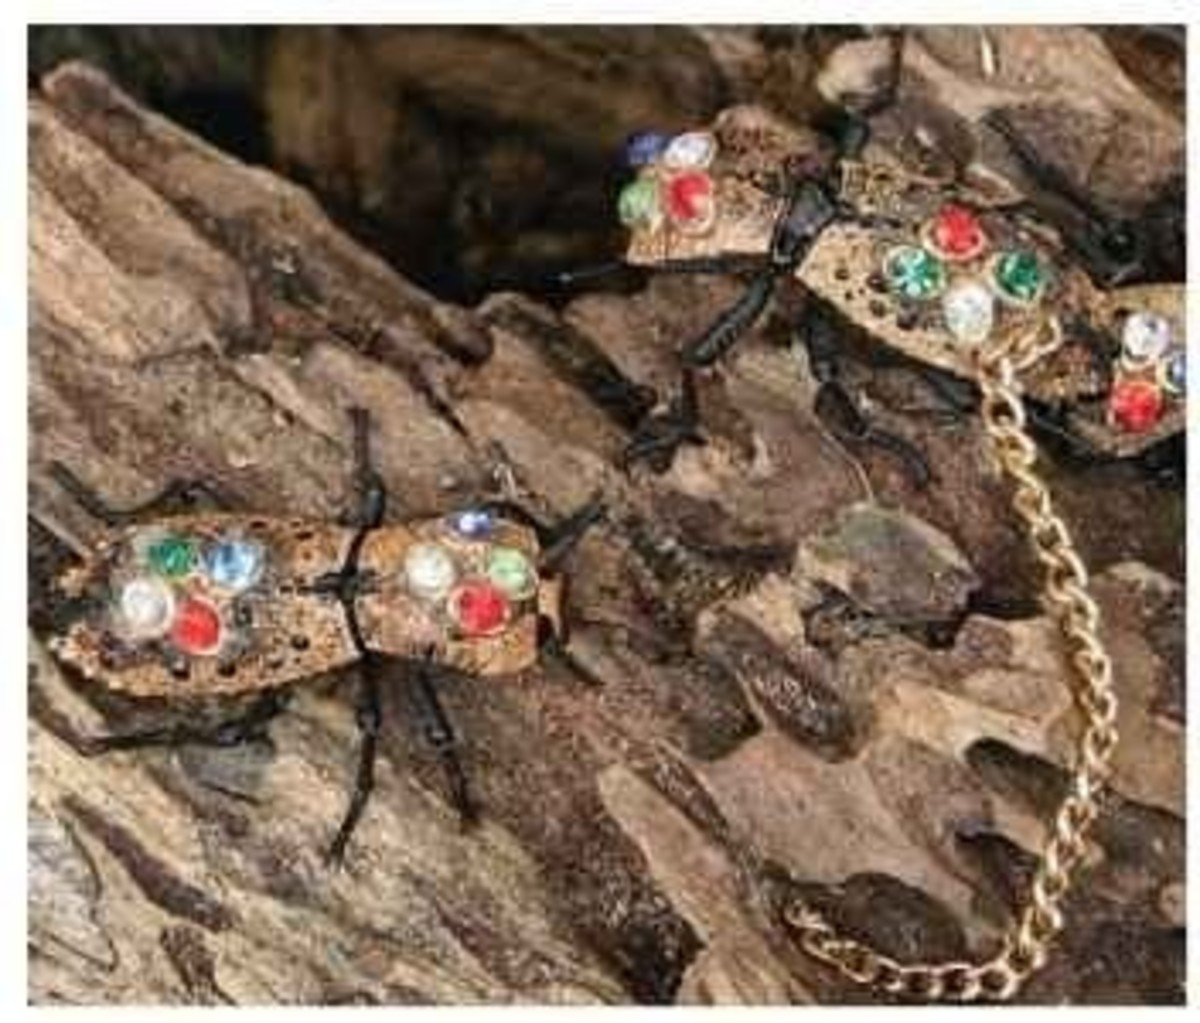 In this photo are living death watch beetles decorated as jewerly for sale in old Mexico. Usually sold near the Day of the Dead Ceromonies.